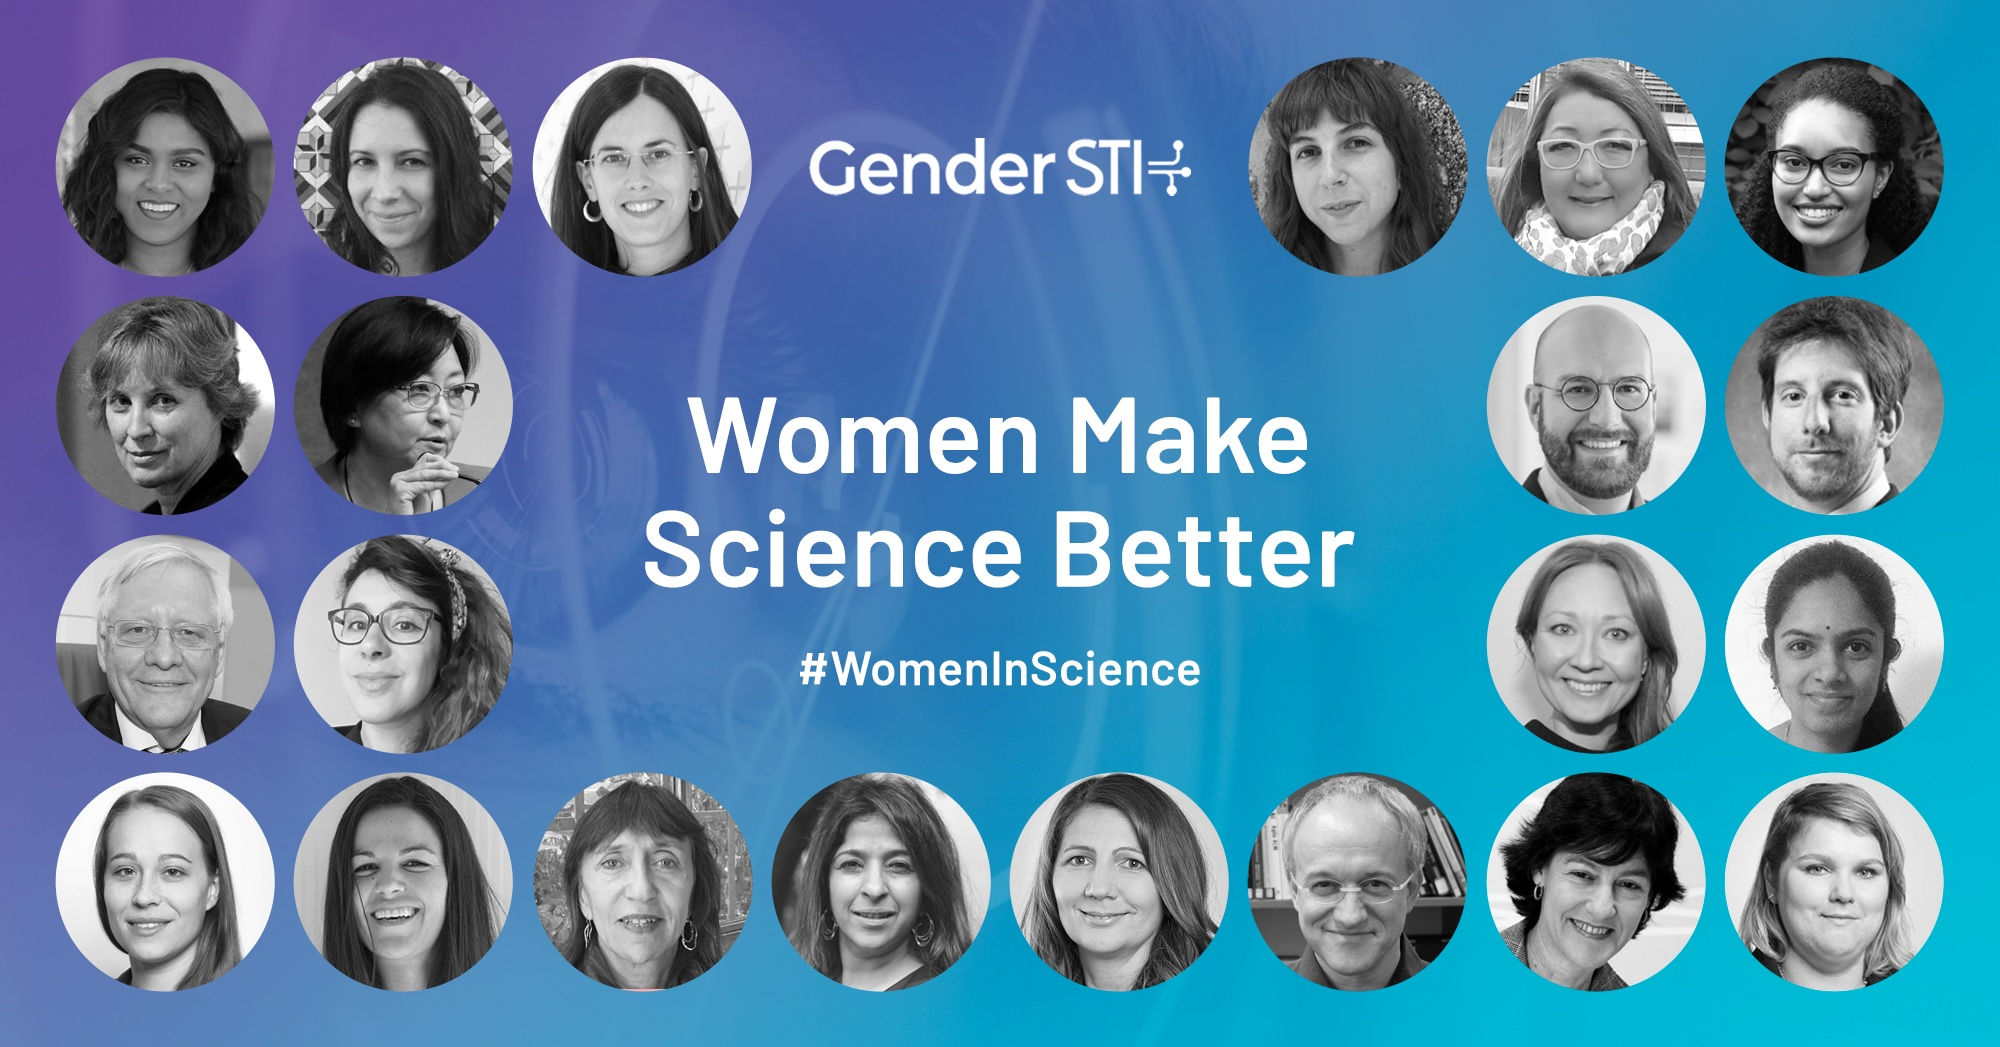 Gender STI spoke to 22 researchers and experts in science for the International Day of Women and Girls in Science.